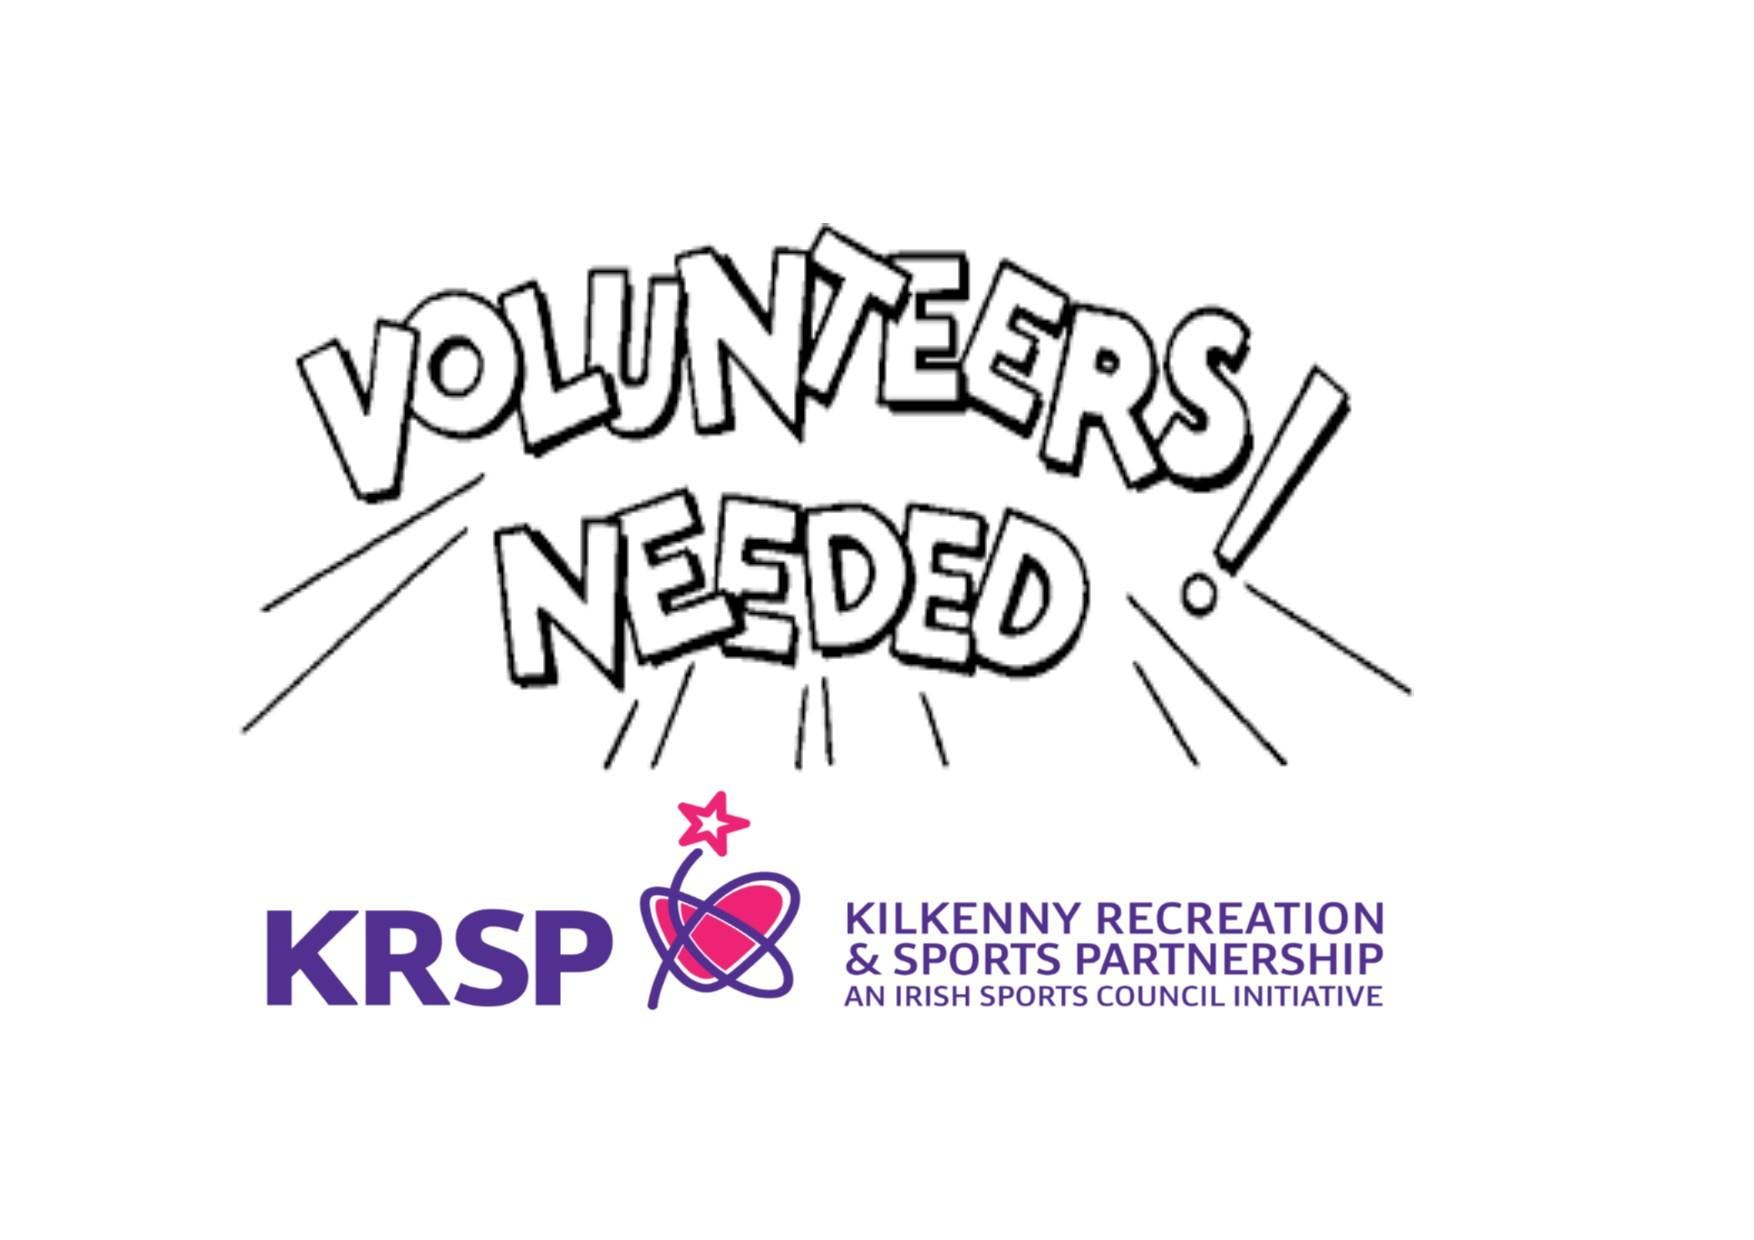 KRSP Volunteer Registration